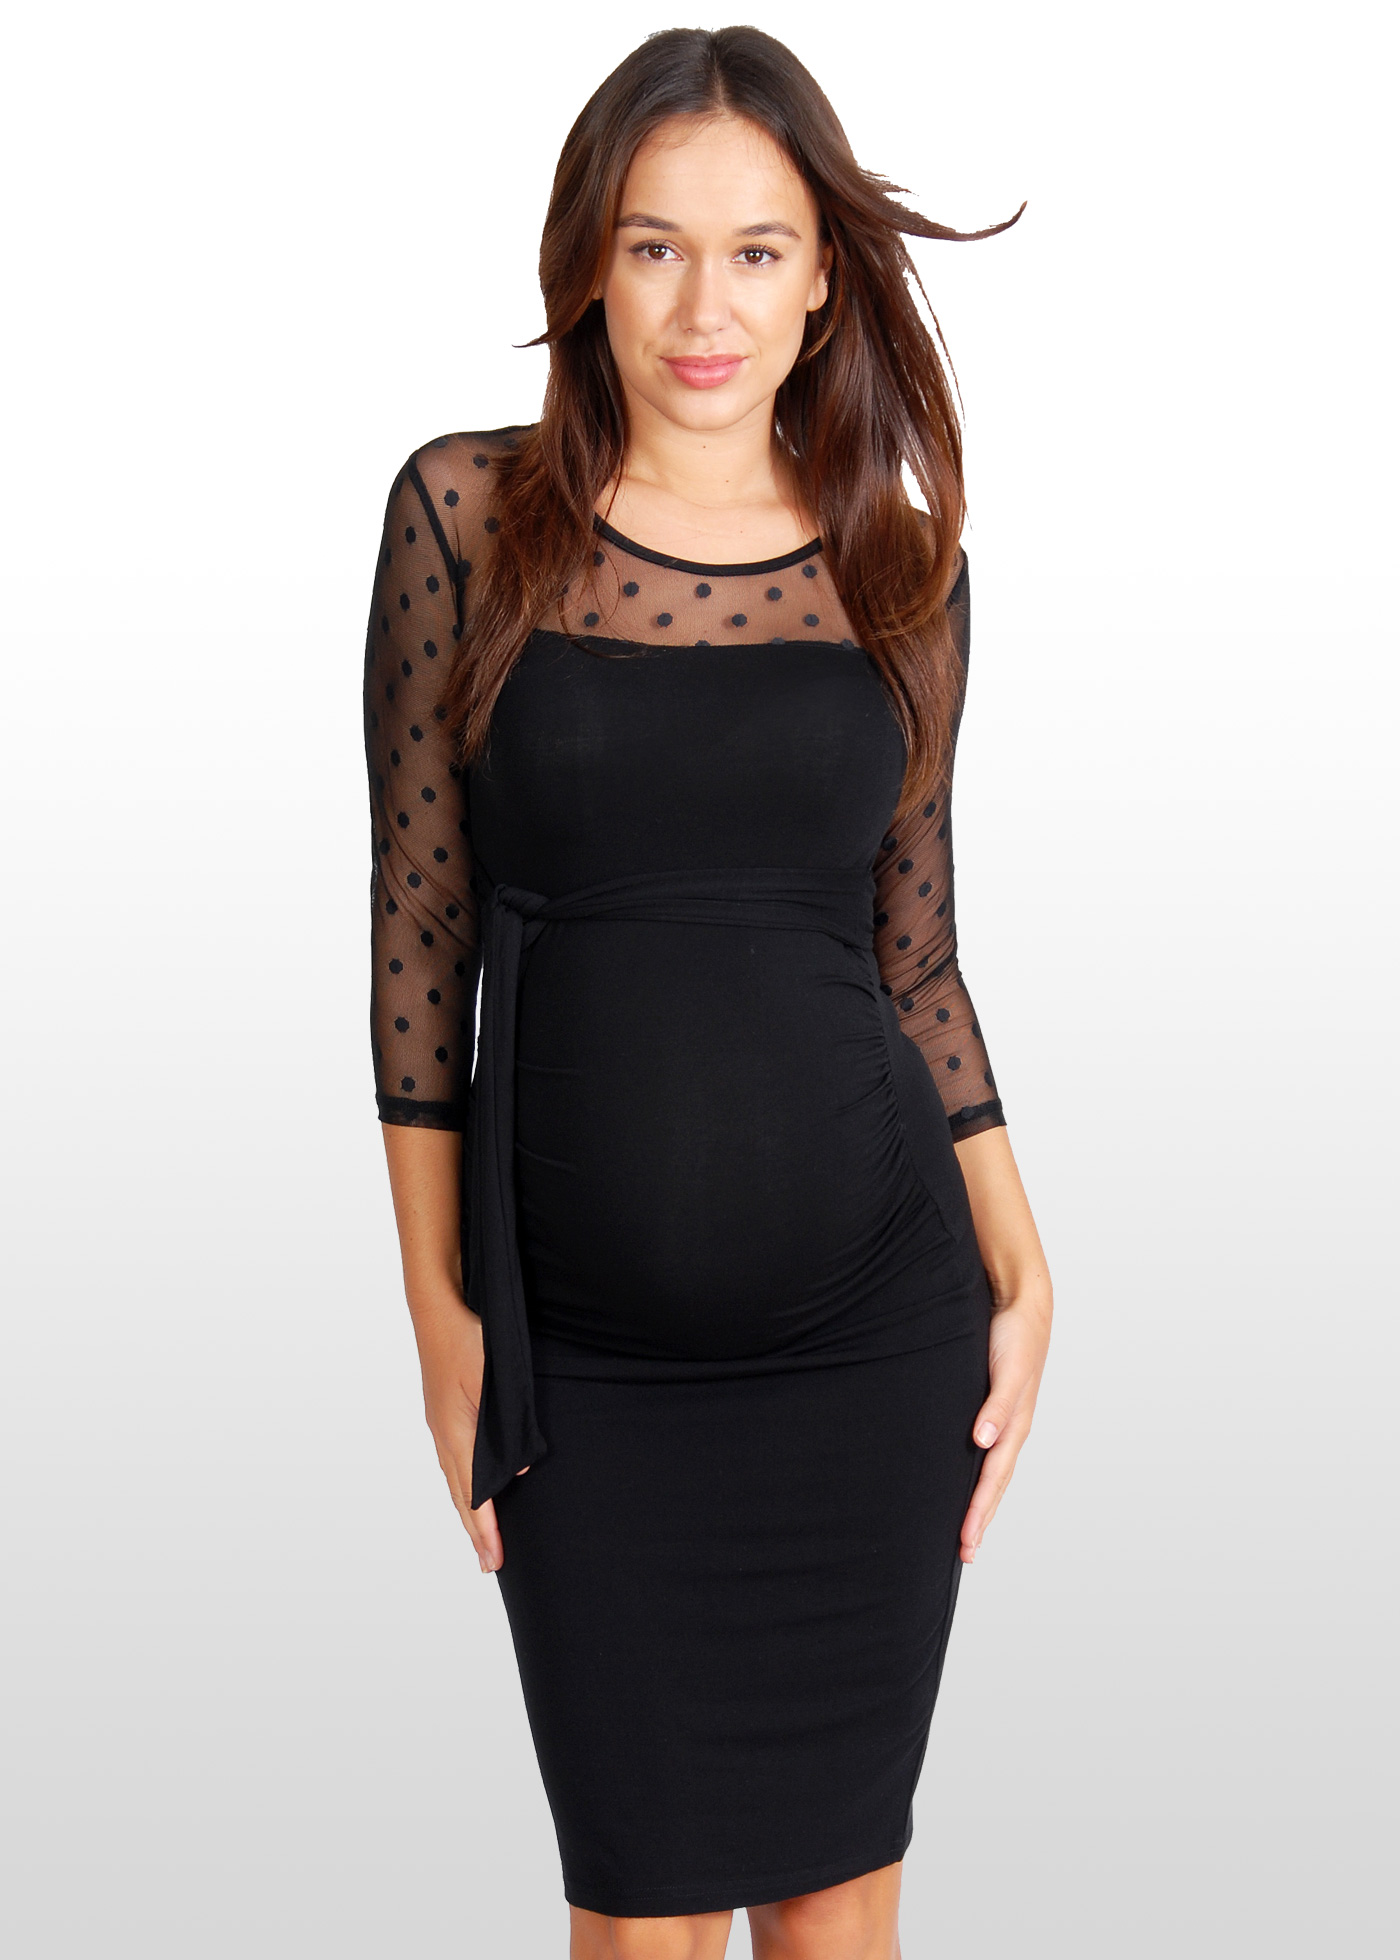 Evening Wear Maternity Tops 29